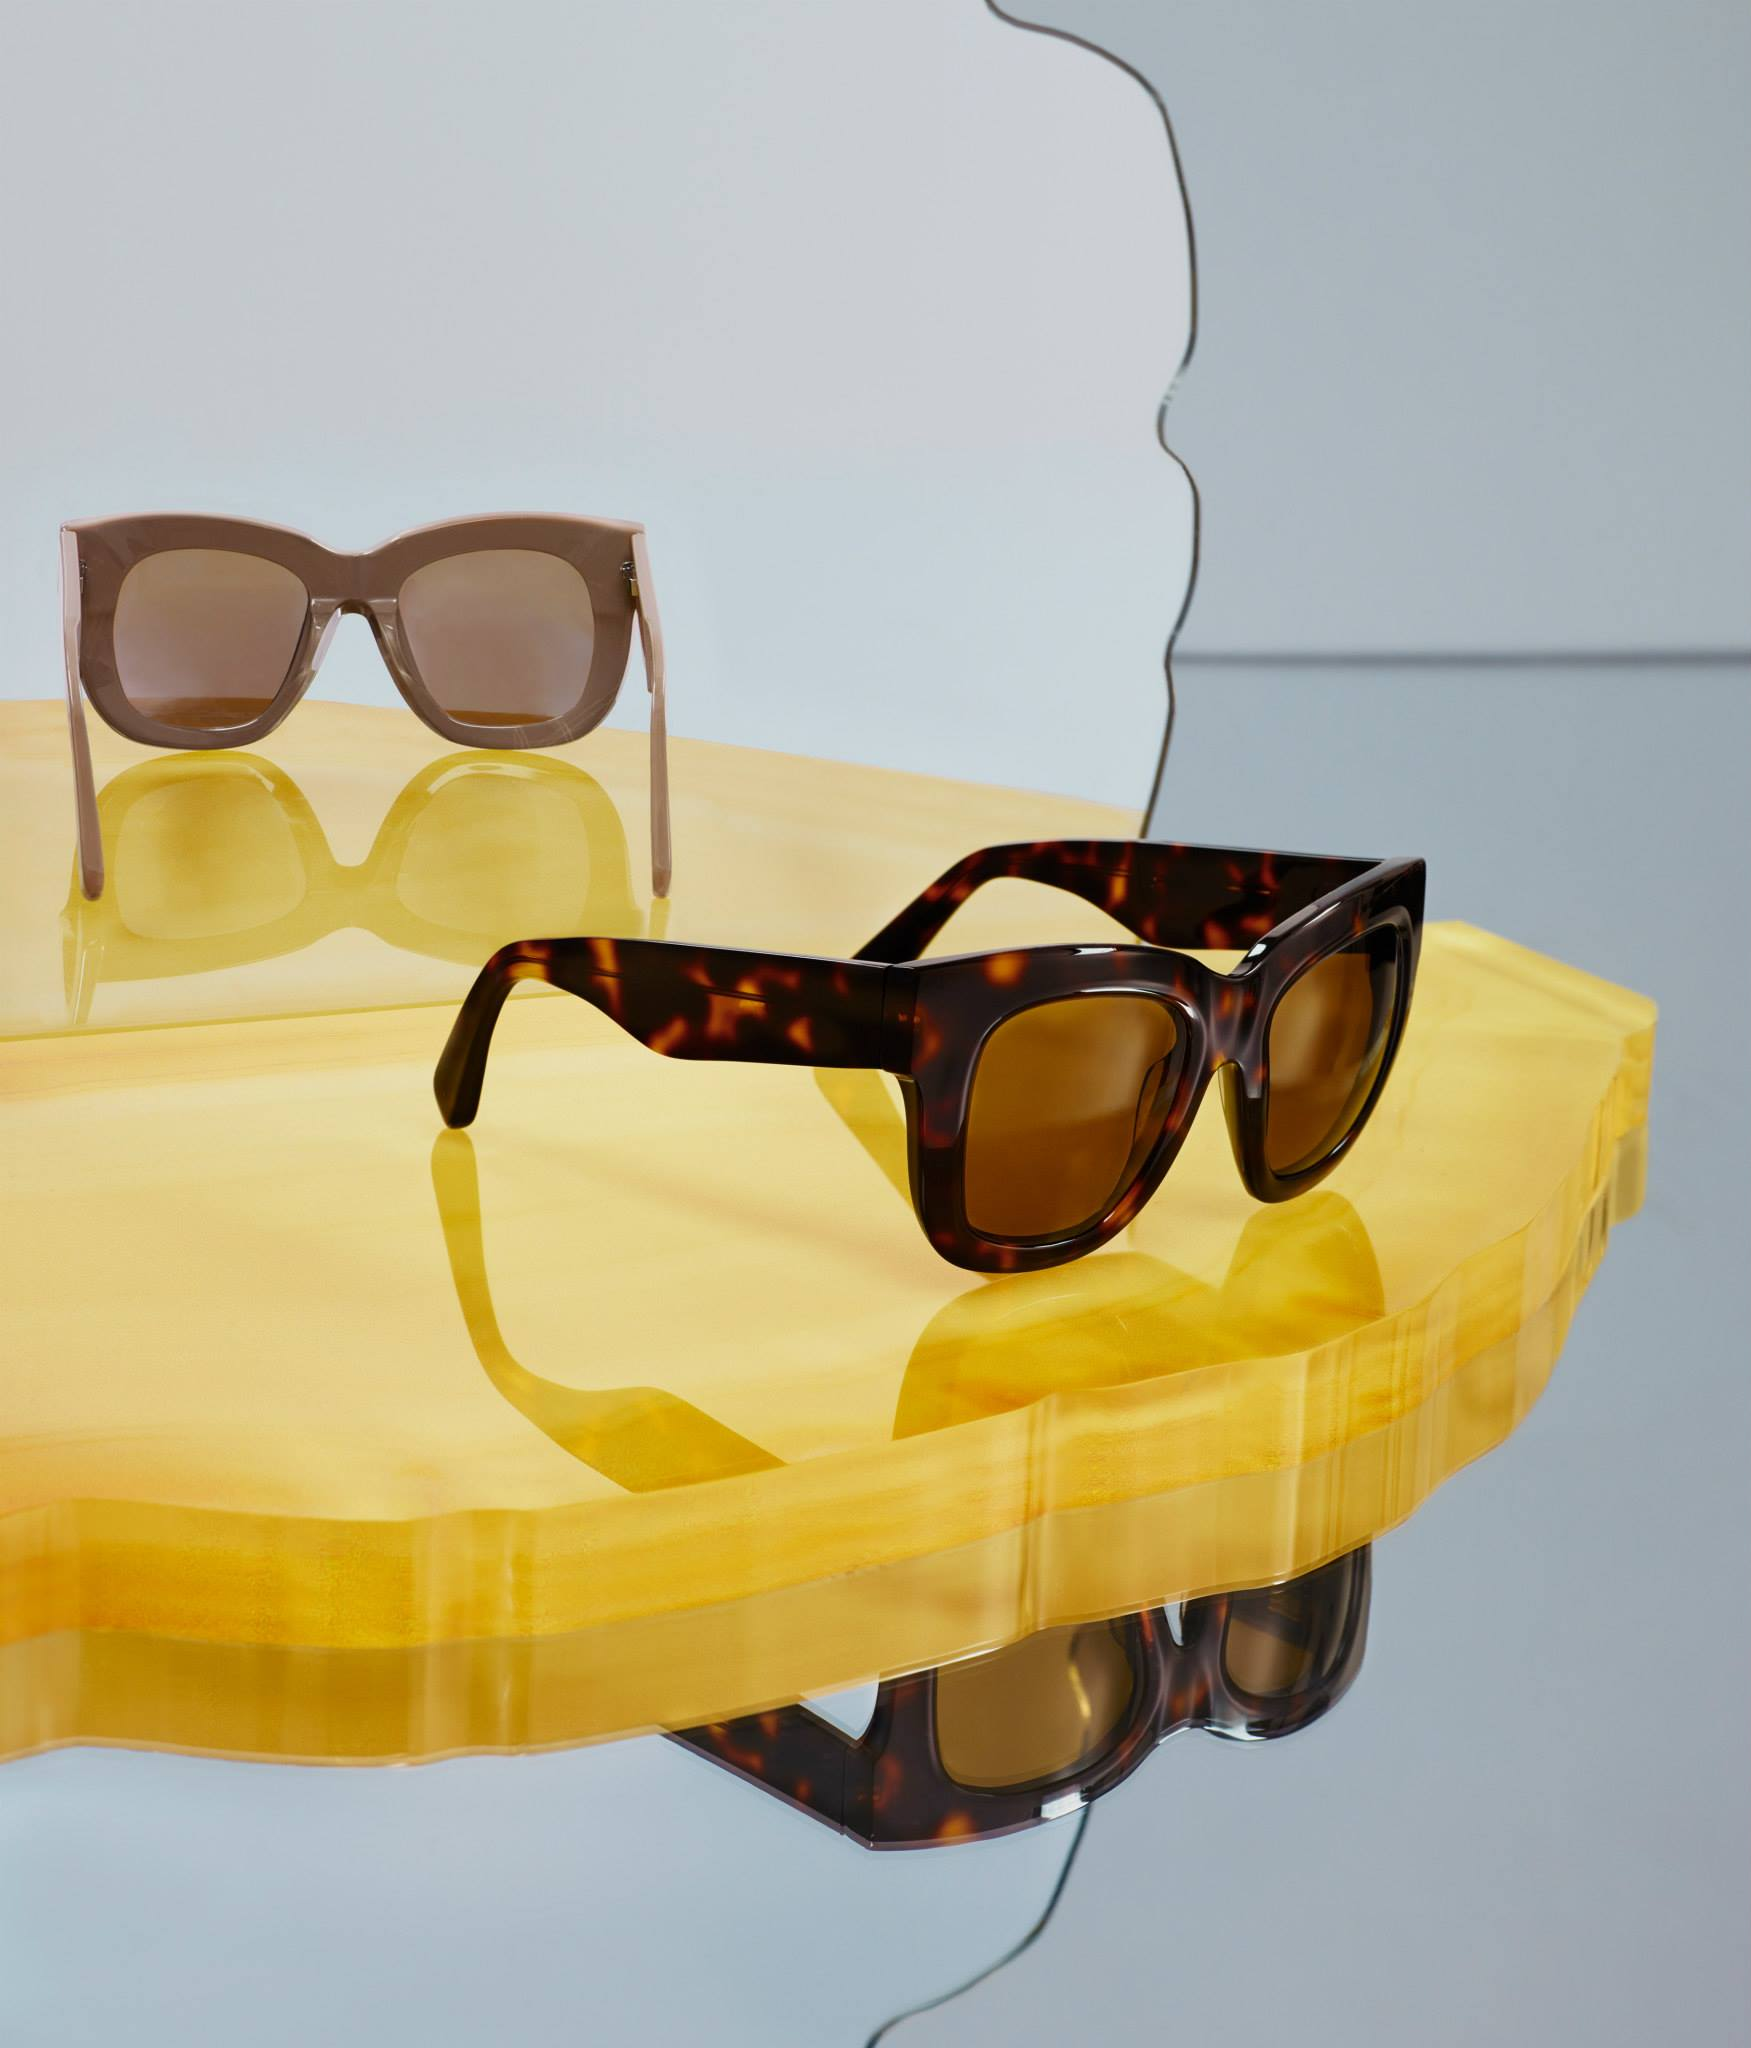 Acne Studios – Sunglasses collection